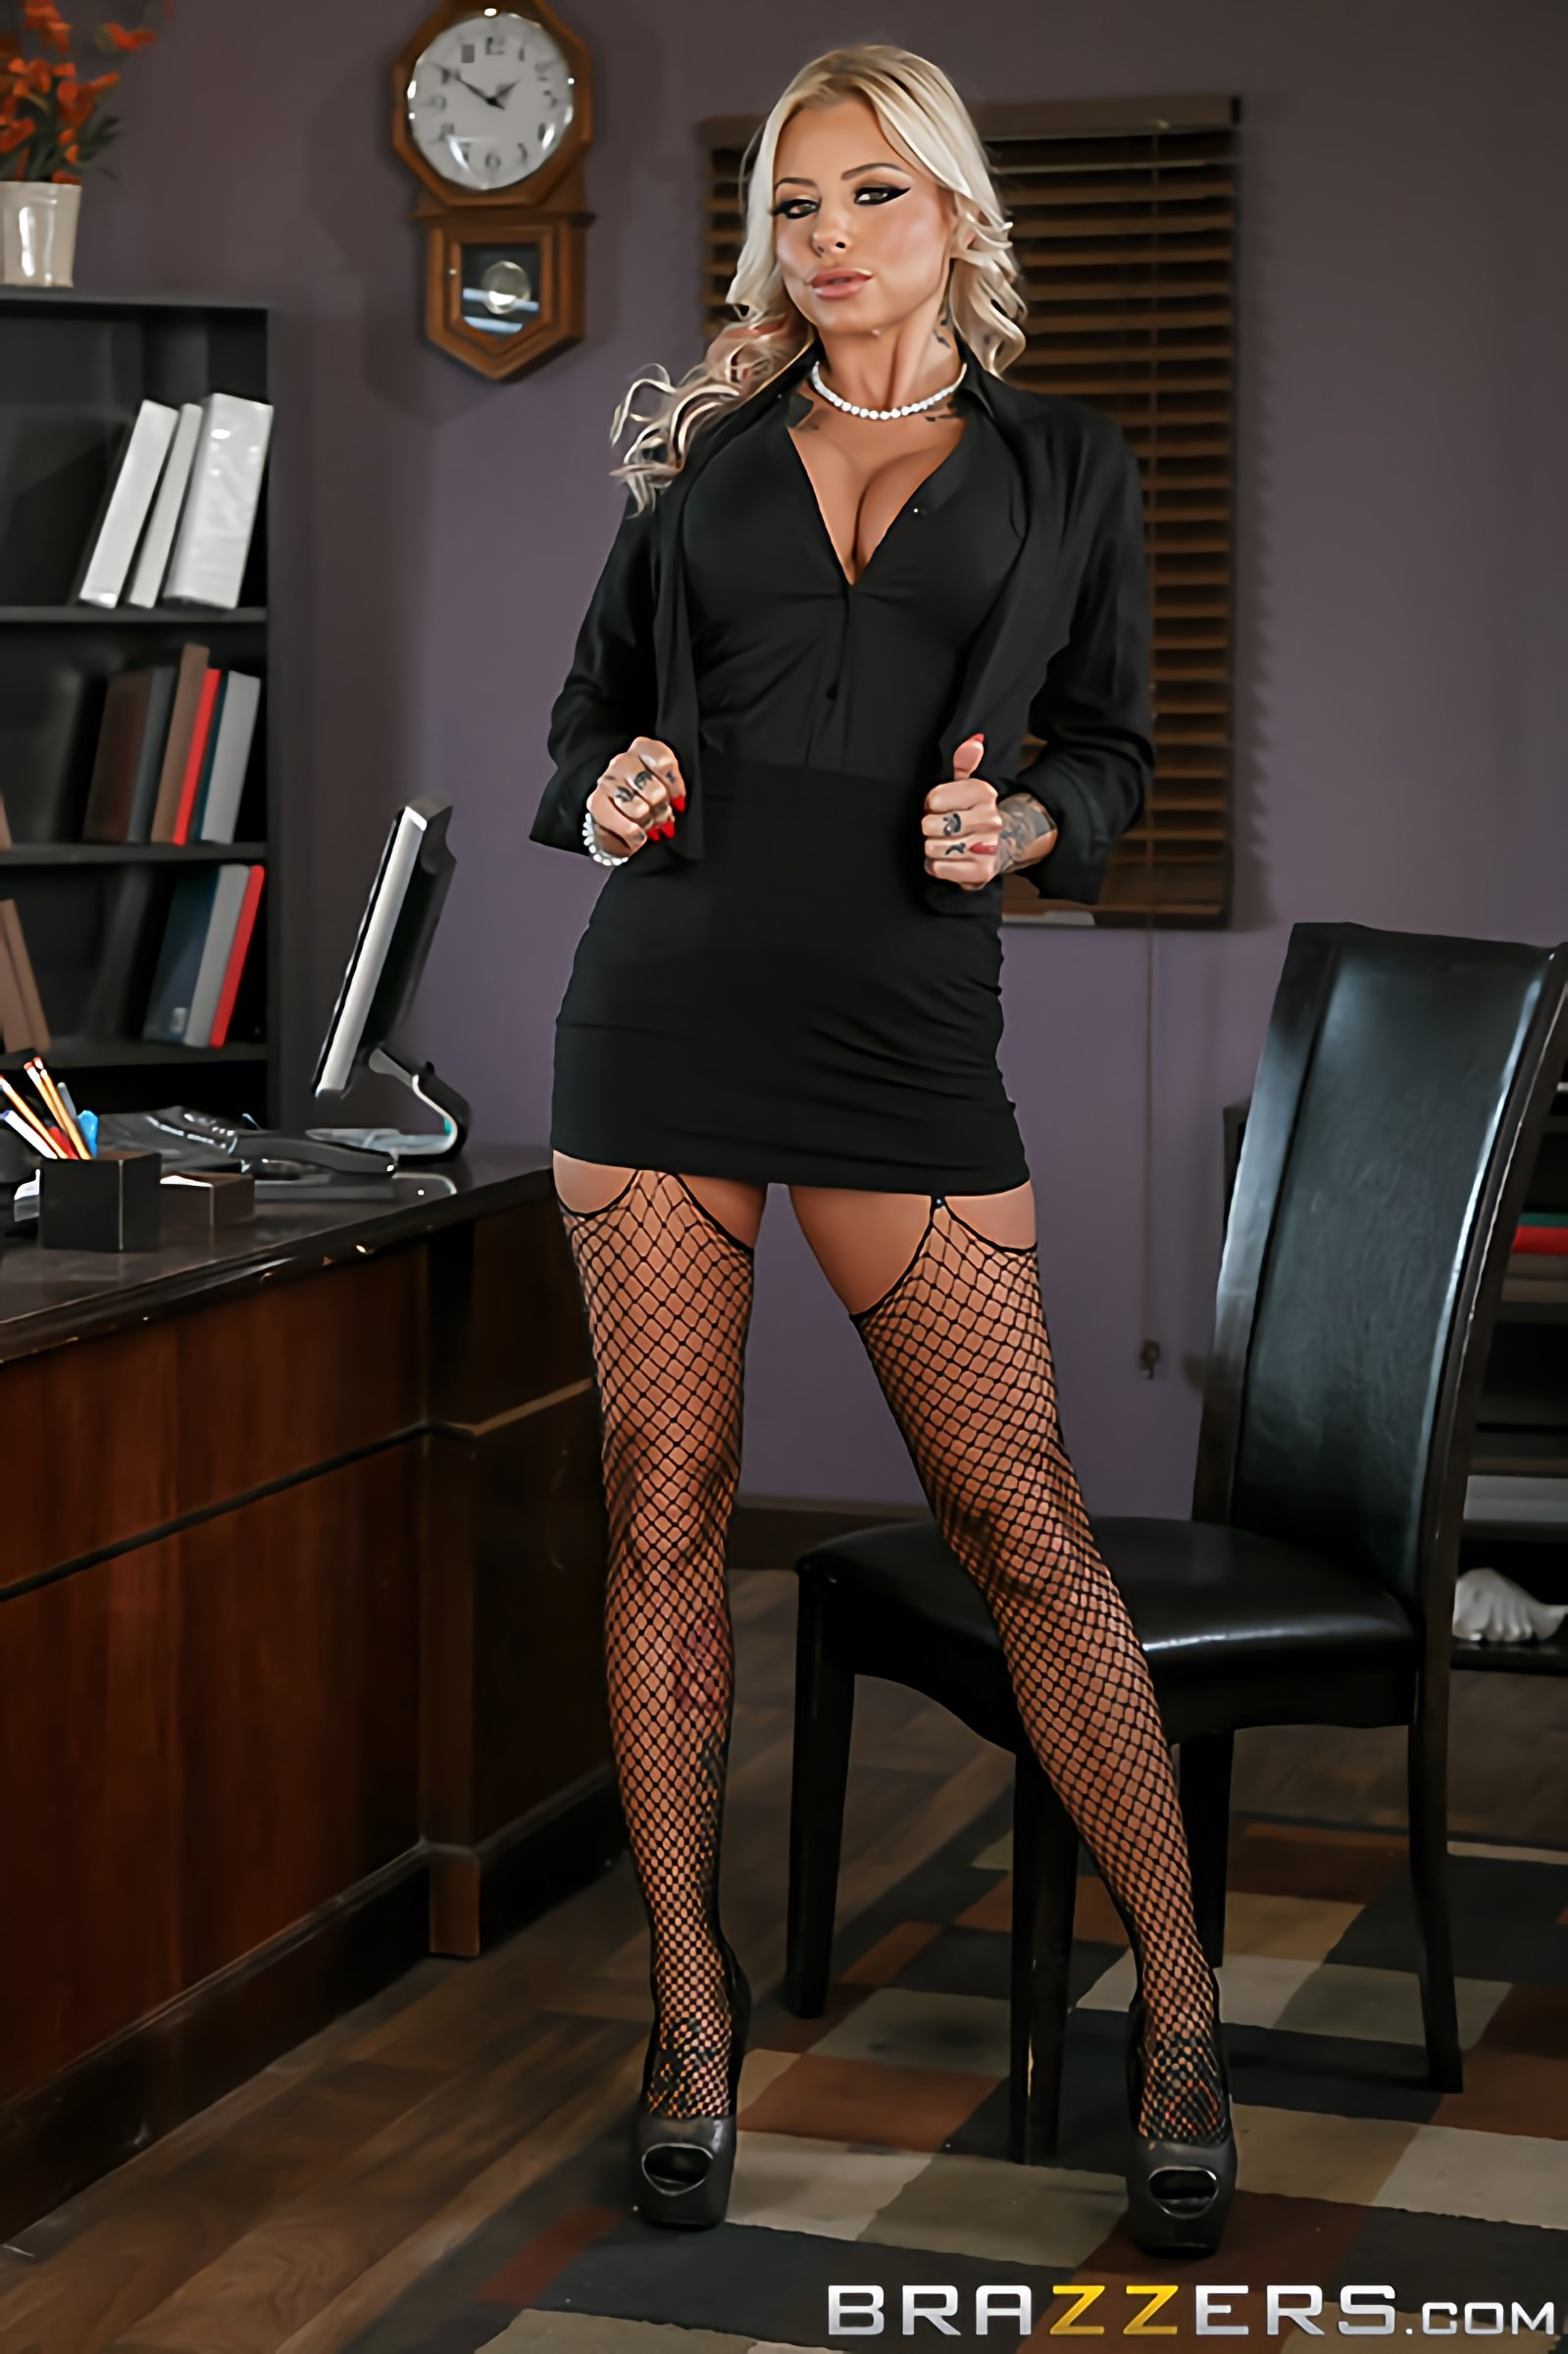 Brazzers 'The Head Mistress' starring Britney Shannon (Photo 1)